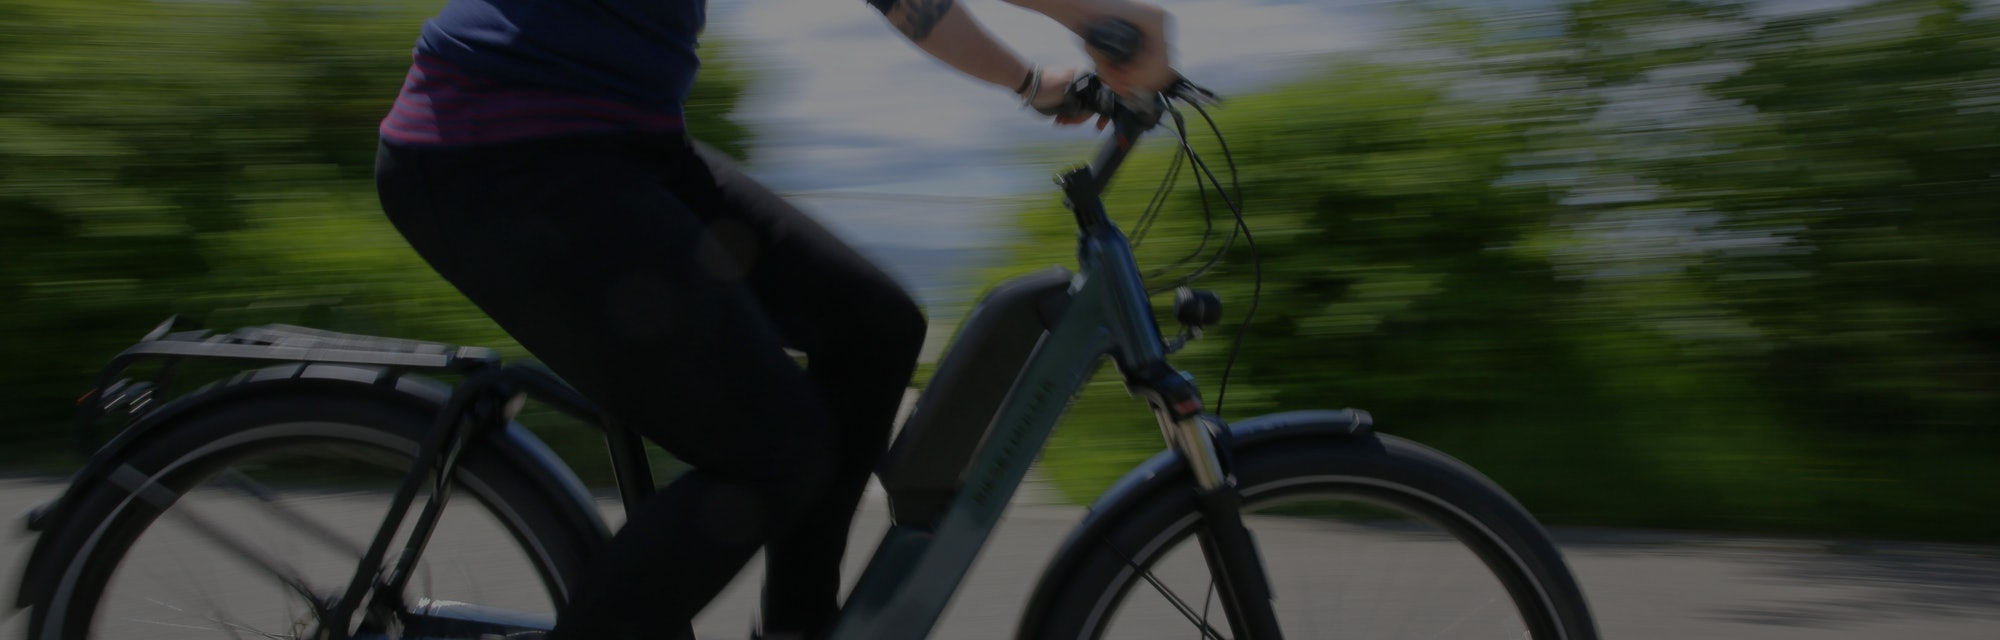 Person riding an electric bicycle.